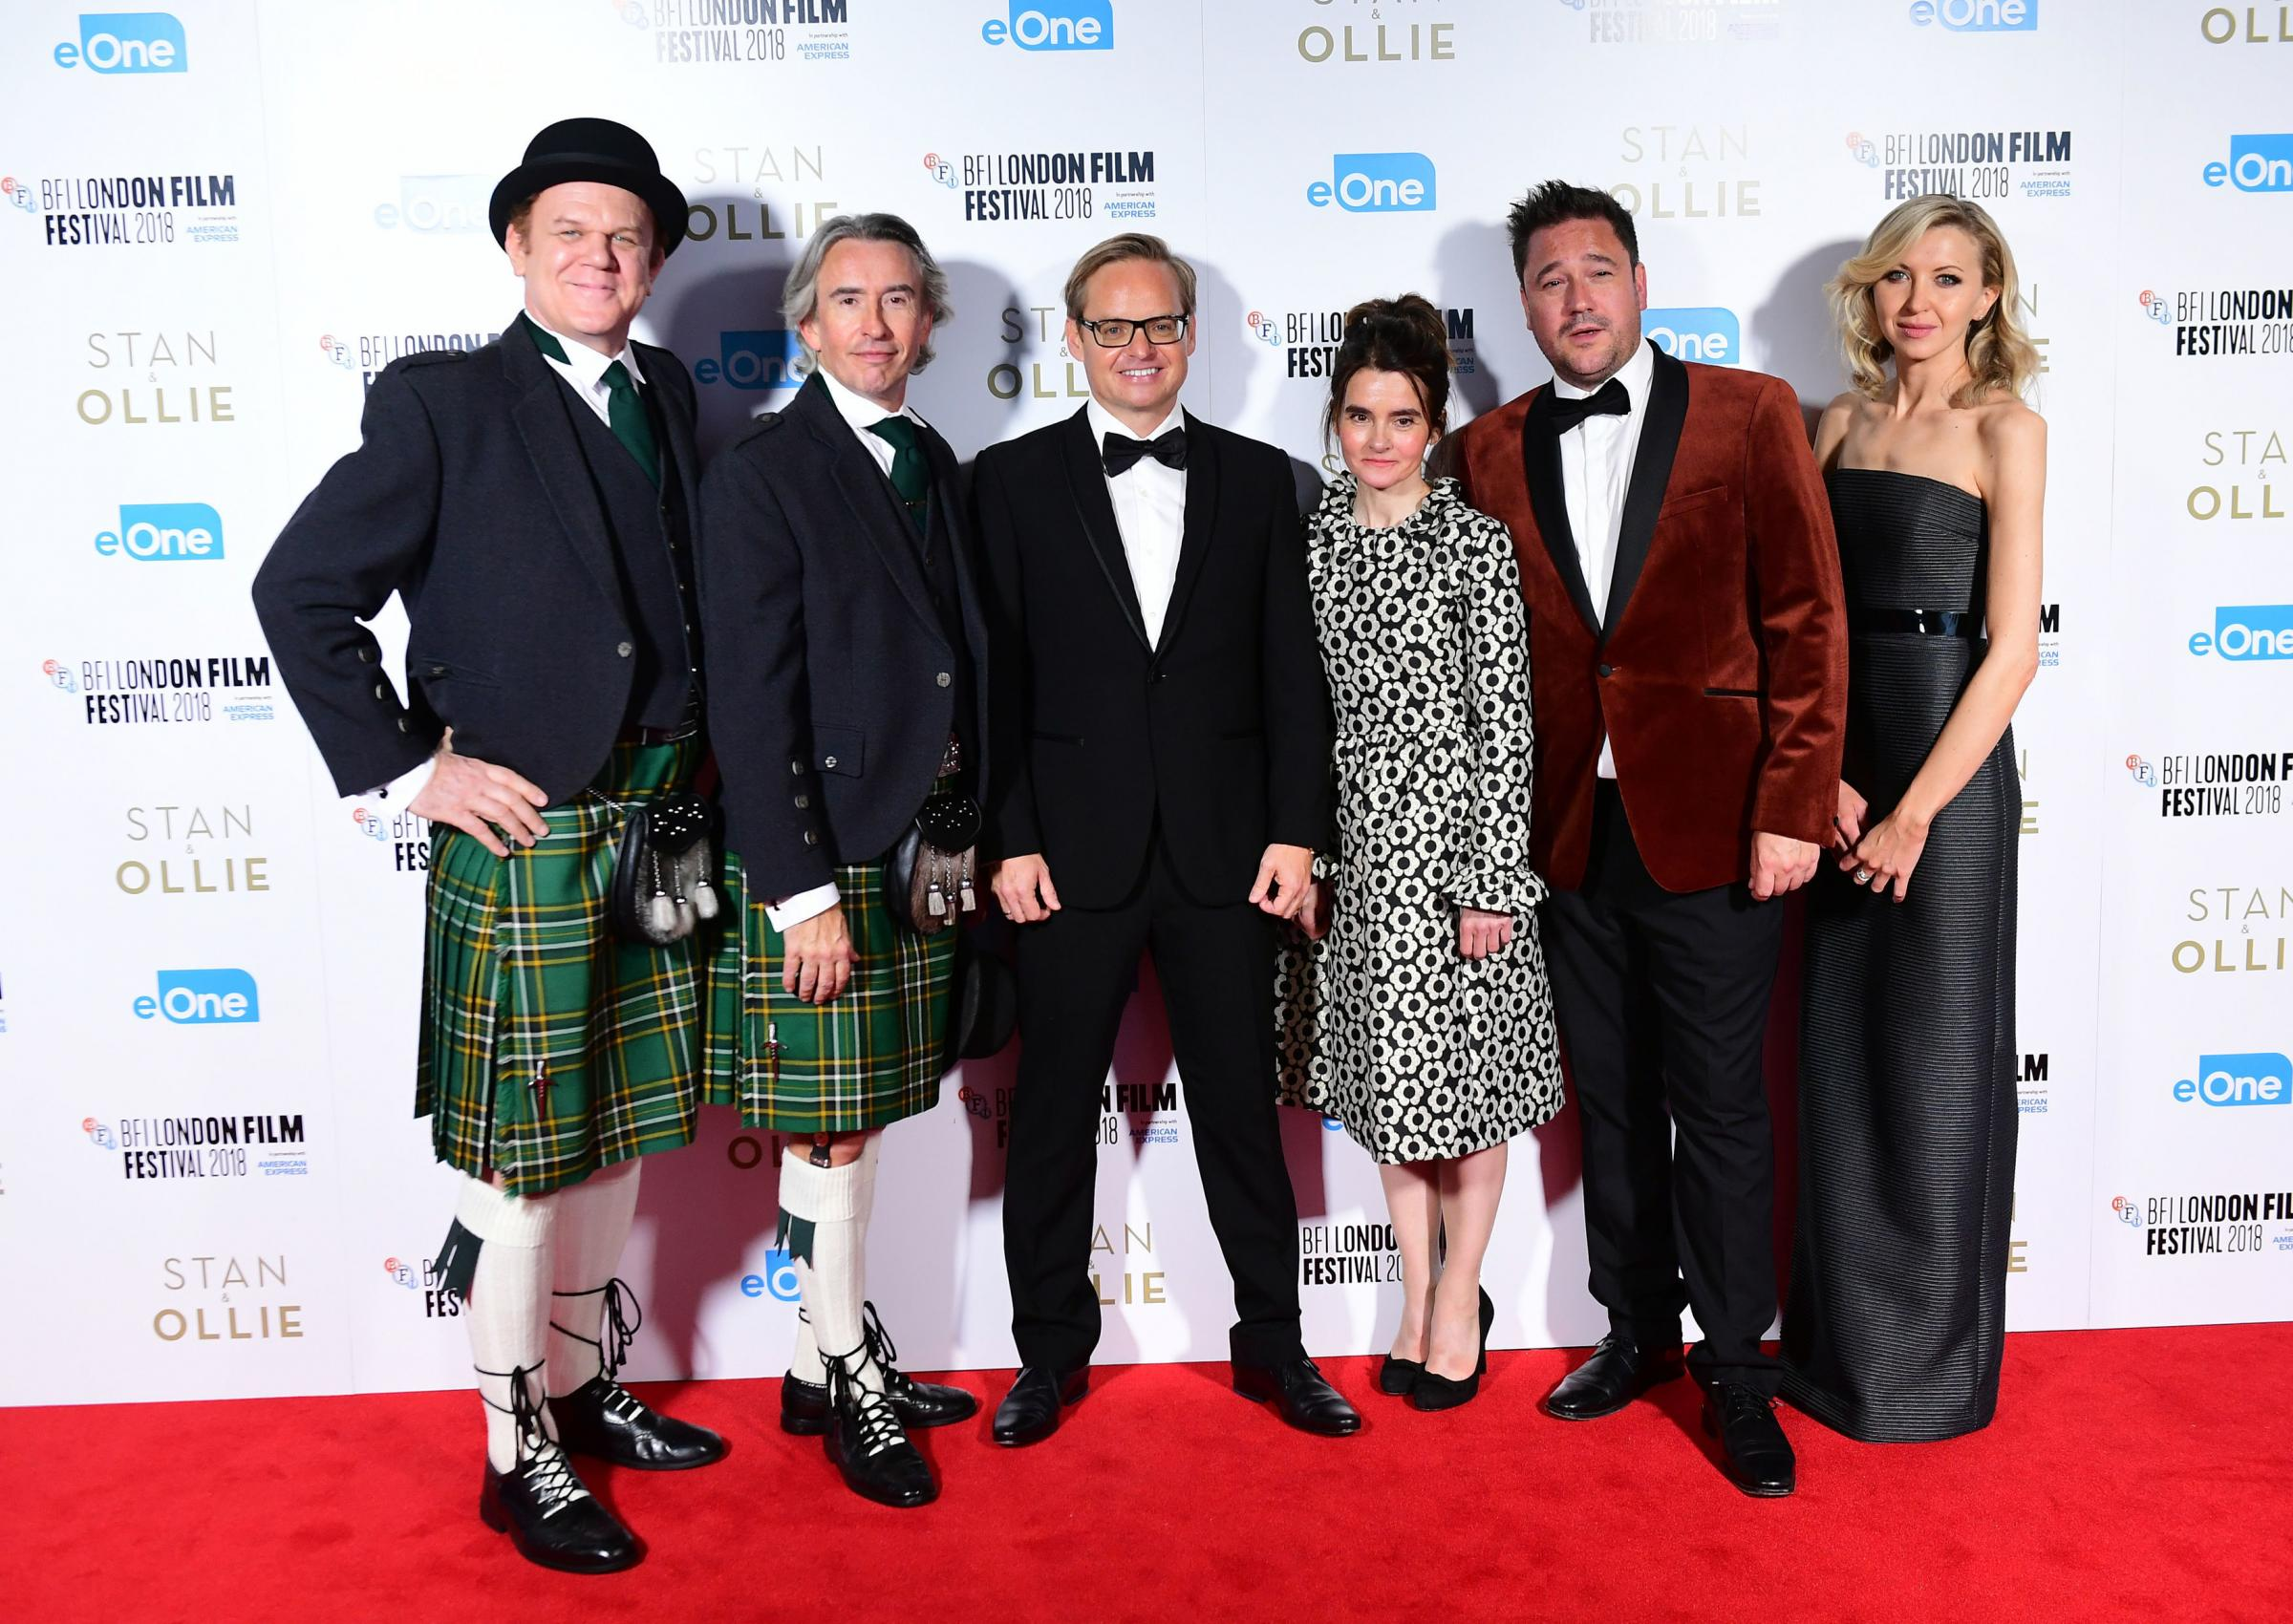 John C. Reilly, Steve Coogan, Jon S.Baird, Shirley Henderson, Rufus Jones and Nina Arianda attending the Stan and Ollie Premiere as part of the BFI London Film Festival at  the Cineworld Cinema in London. PRESS ASSOCIATION Photo. Picture date: Sunday Octo